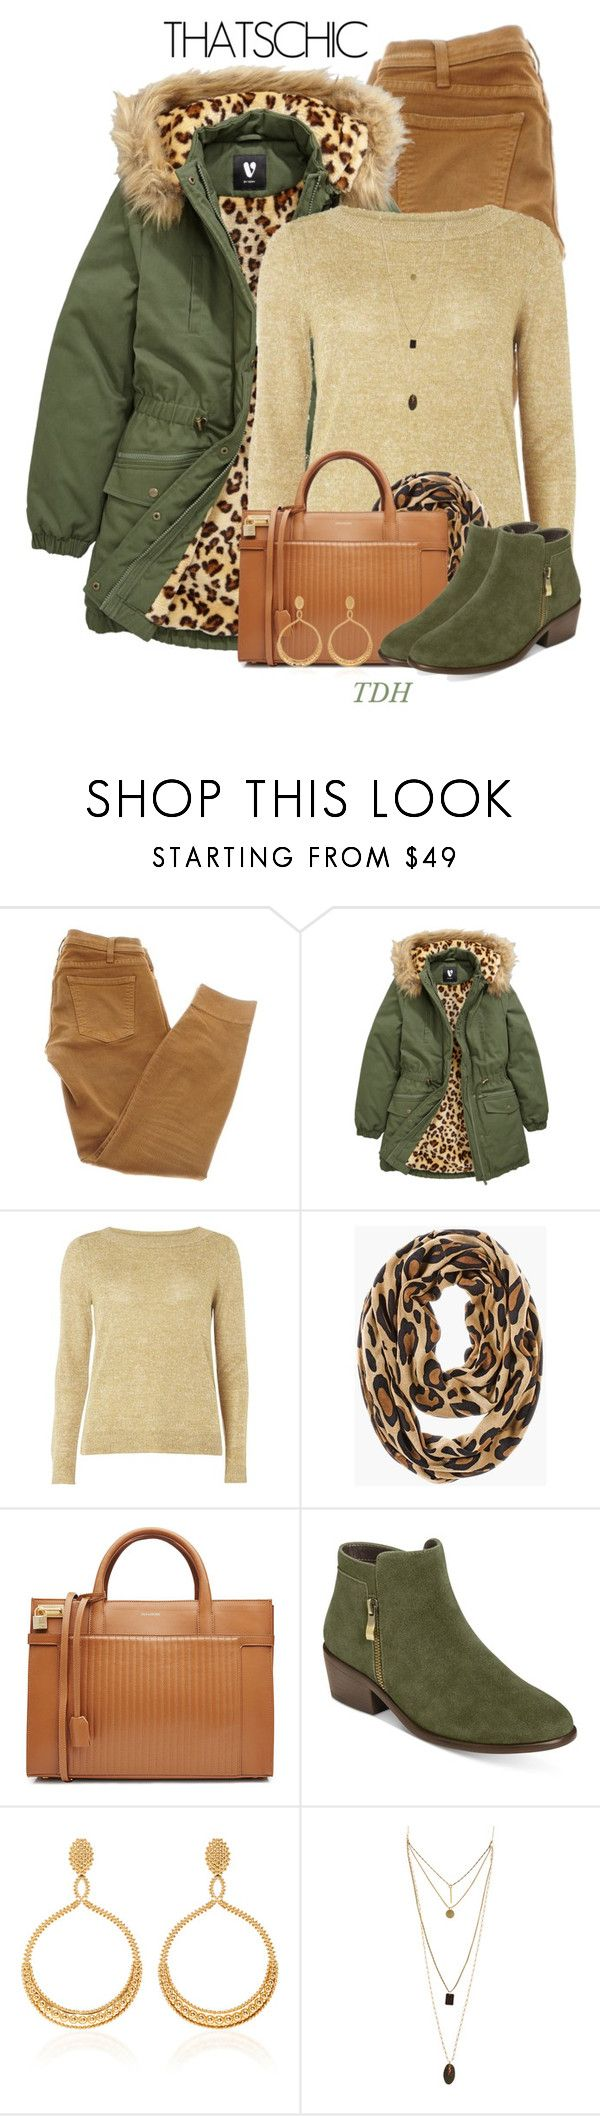 """""""Faux Fur Parka"""" by talvadh ❤ liked on Polyvore featuring Current/Elliott, mel, Chico's, Zadig & Voltaire, Aerosoles and cozychic"""